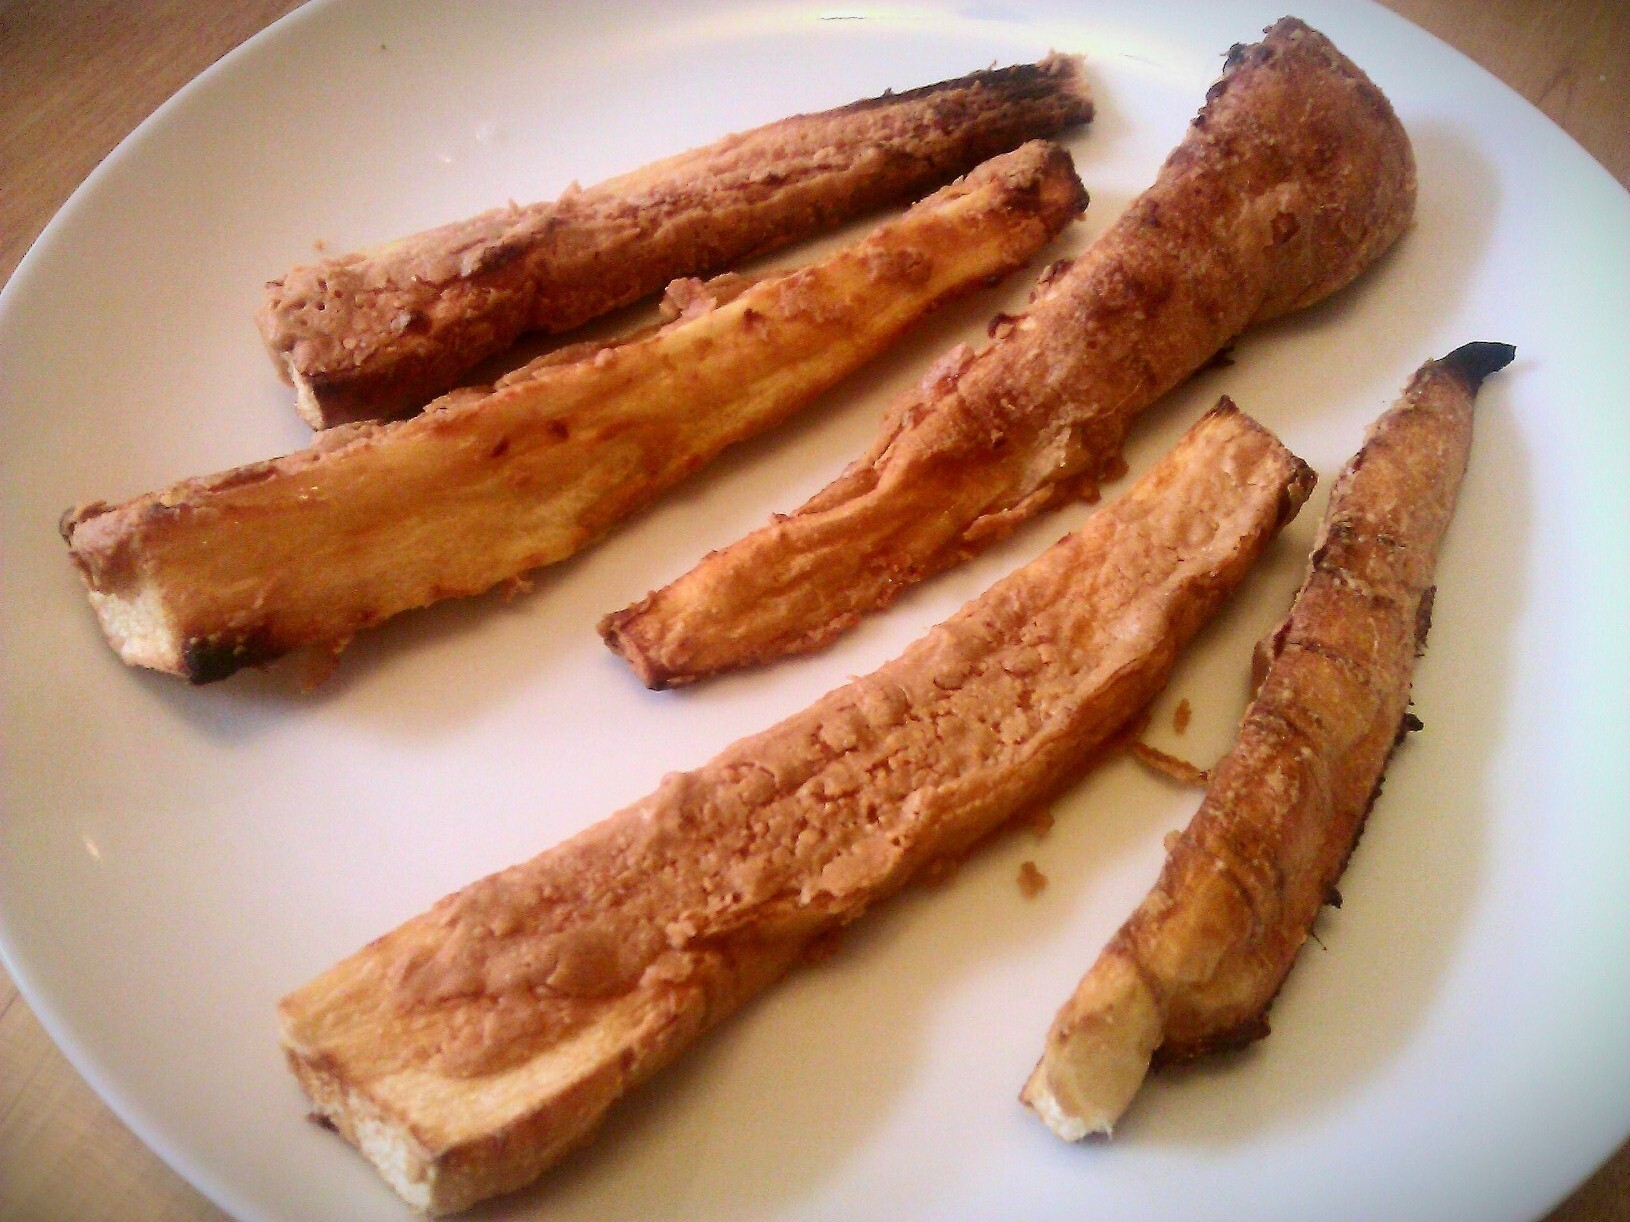 Peanut buttered parsnips